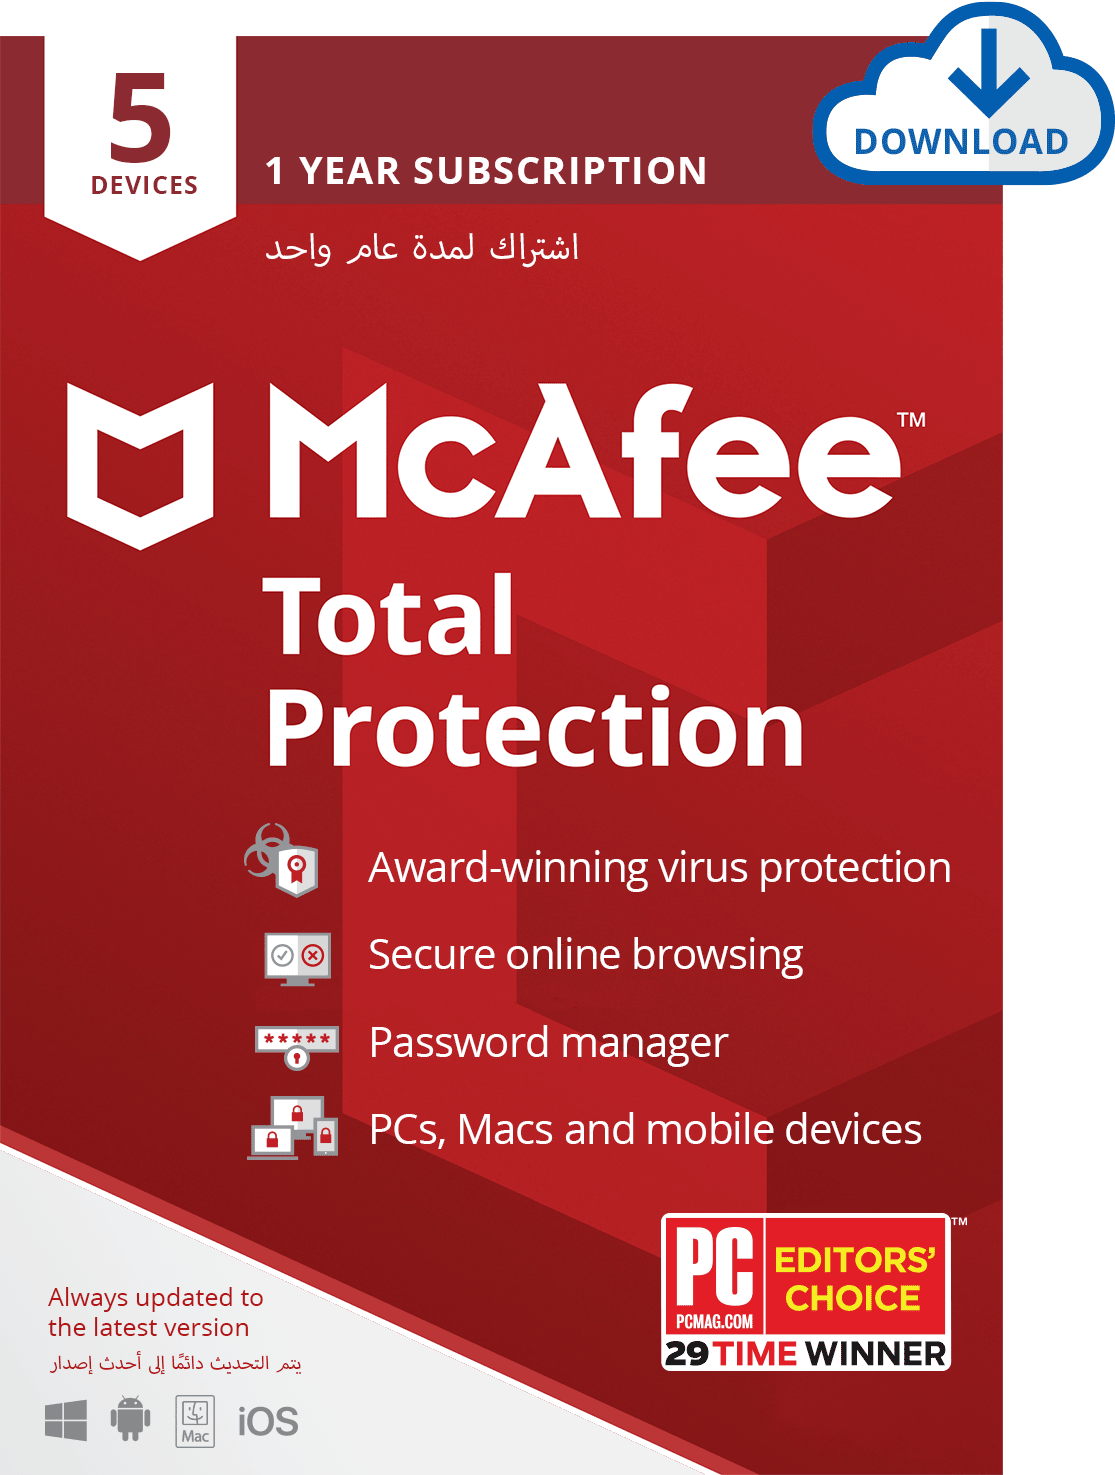 McAfee Total Protection For 5 Devices - Email Delivery